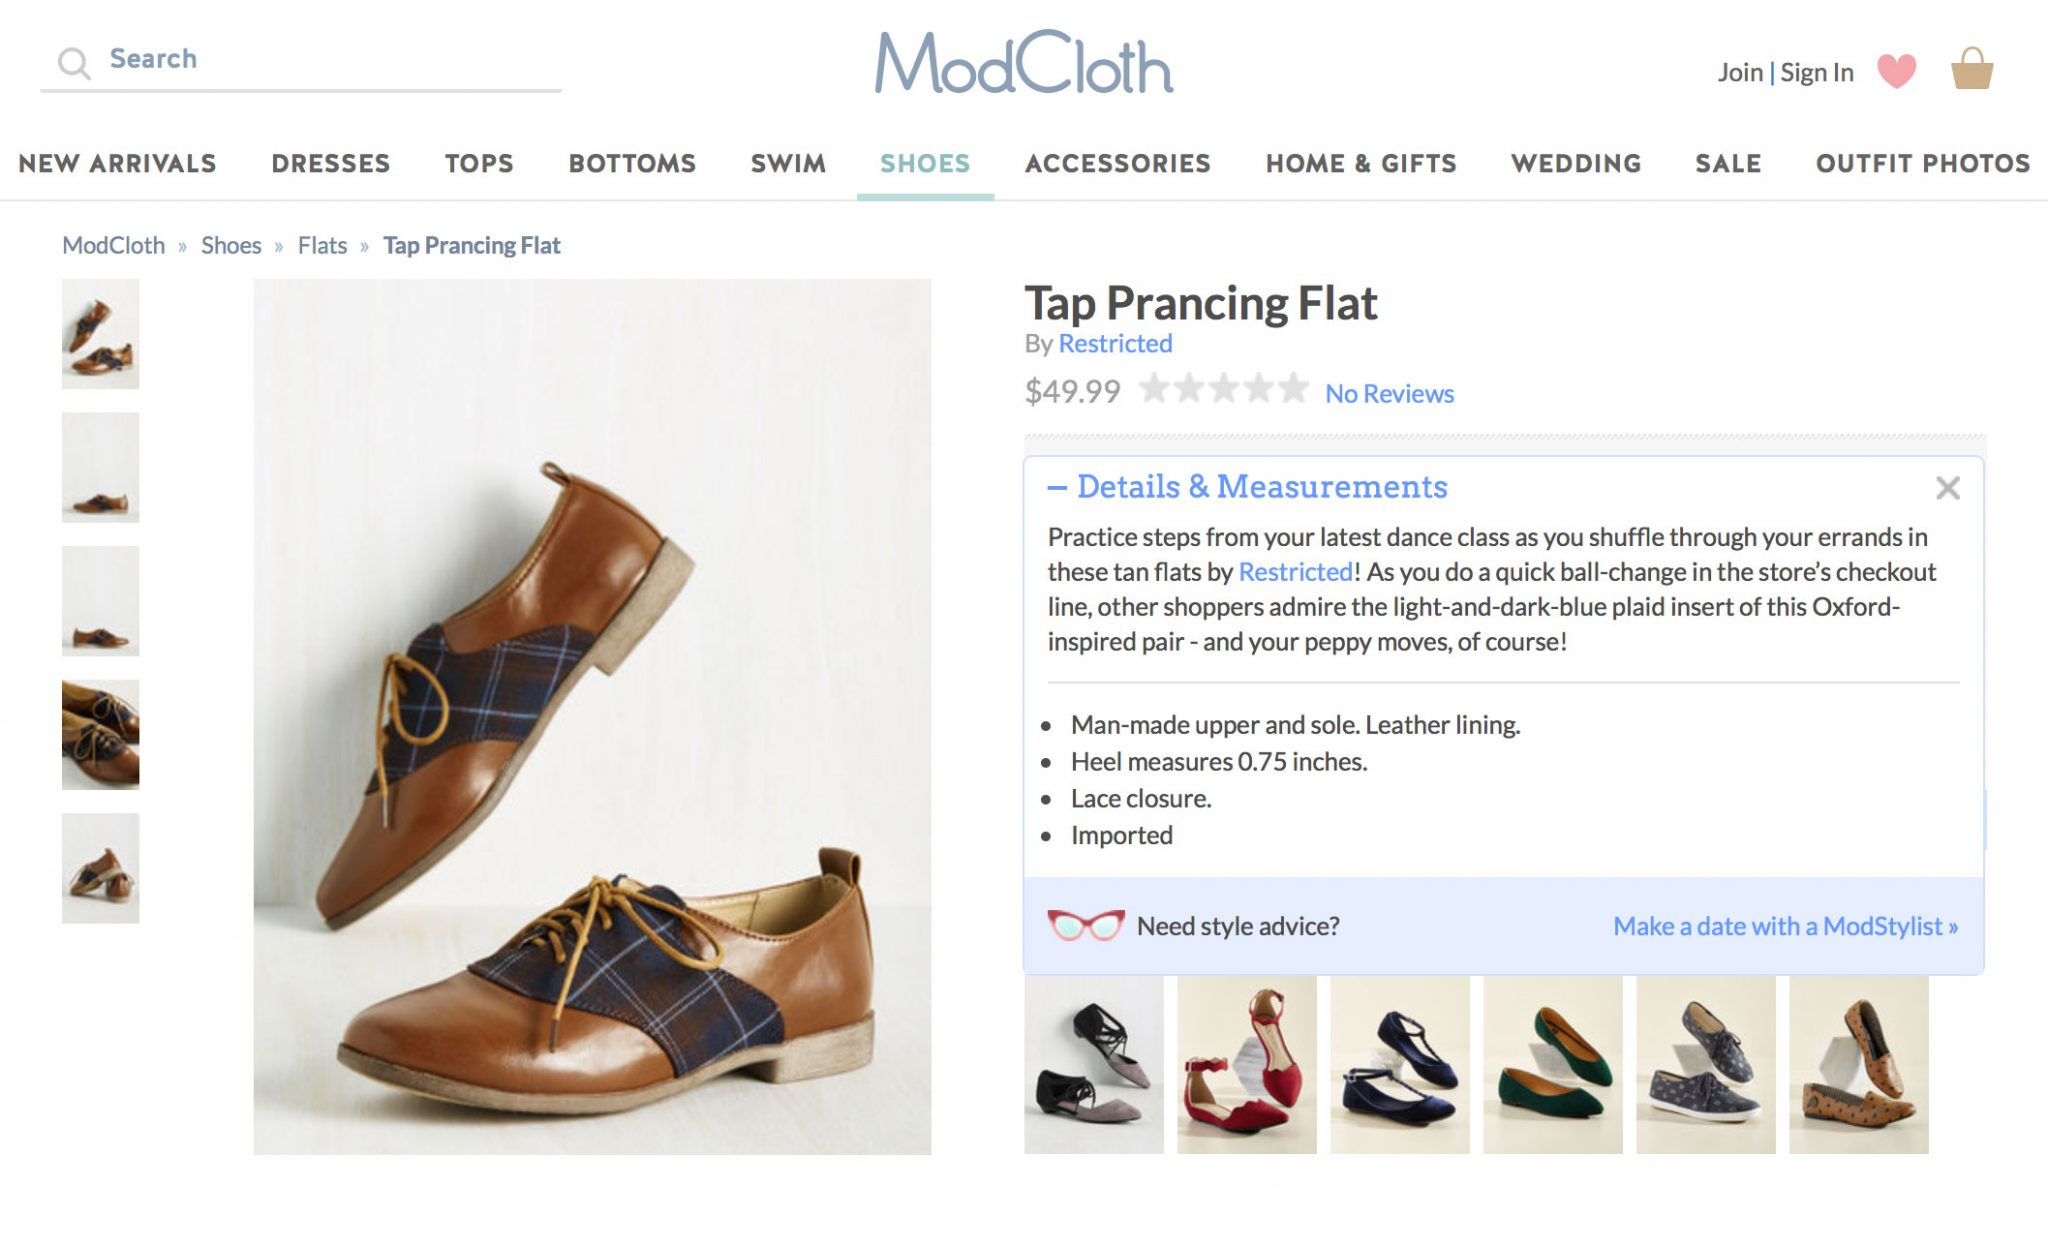 Photo: modcloth.com